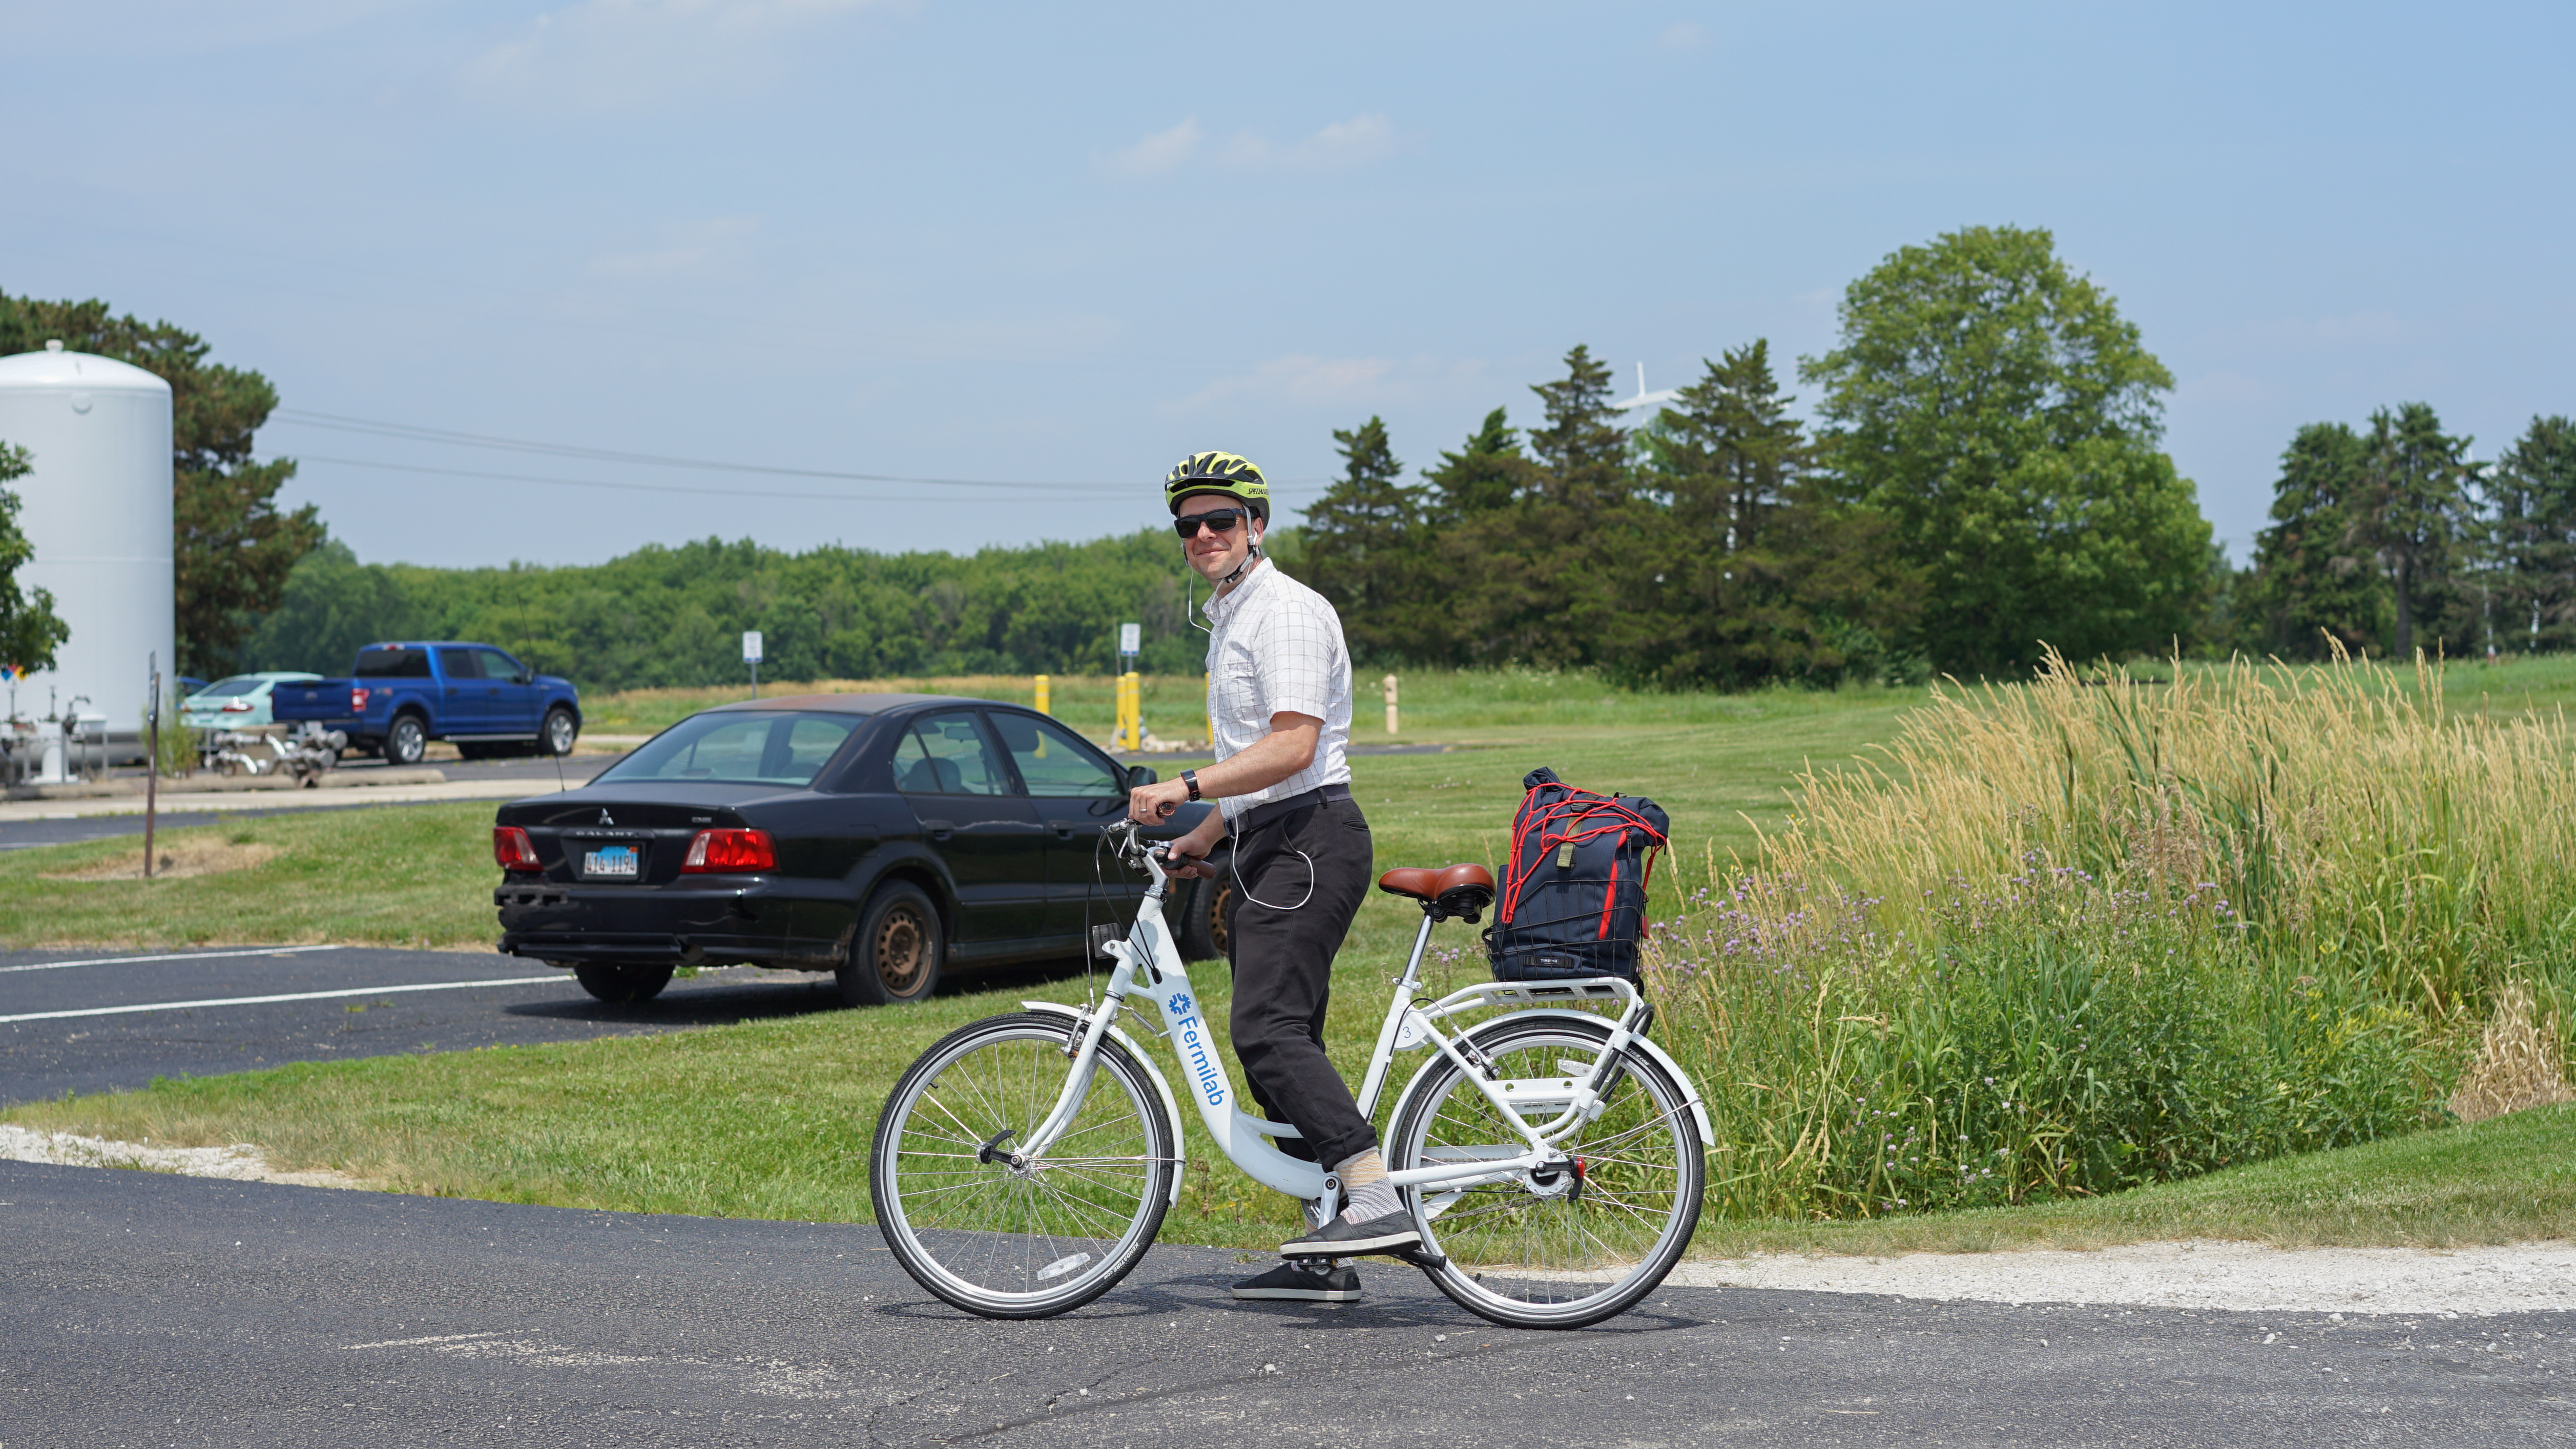 Daniel Bowring enjoys one of the bicycles from the Fermilab bike share program as he returns to work at SiDet. people Photo: Leticia Shaddix